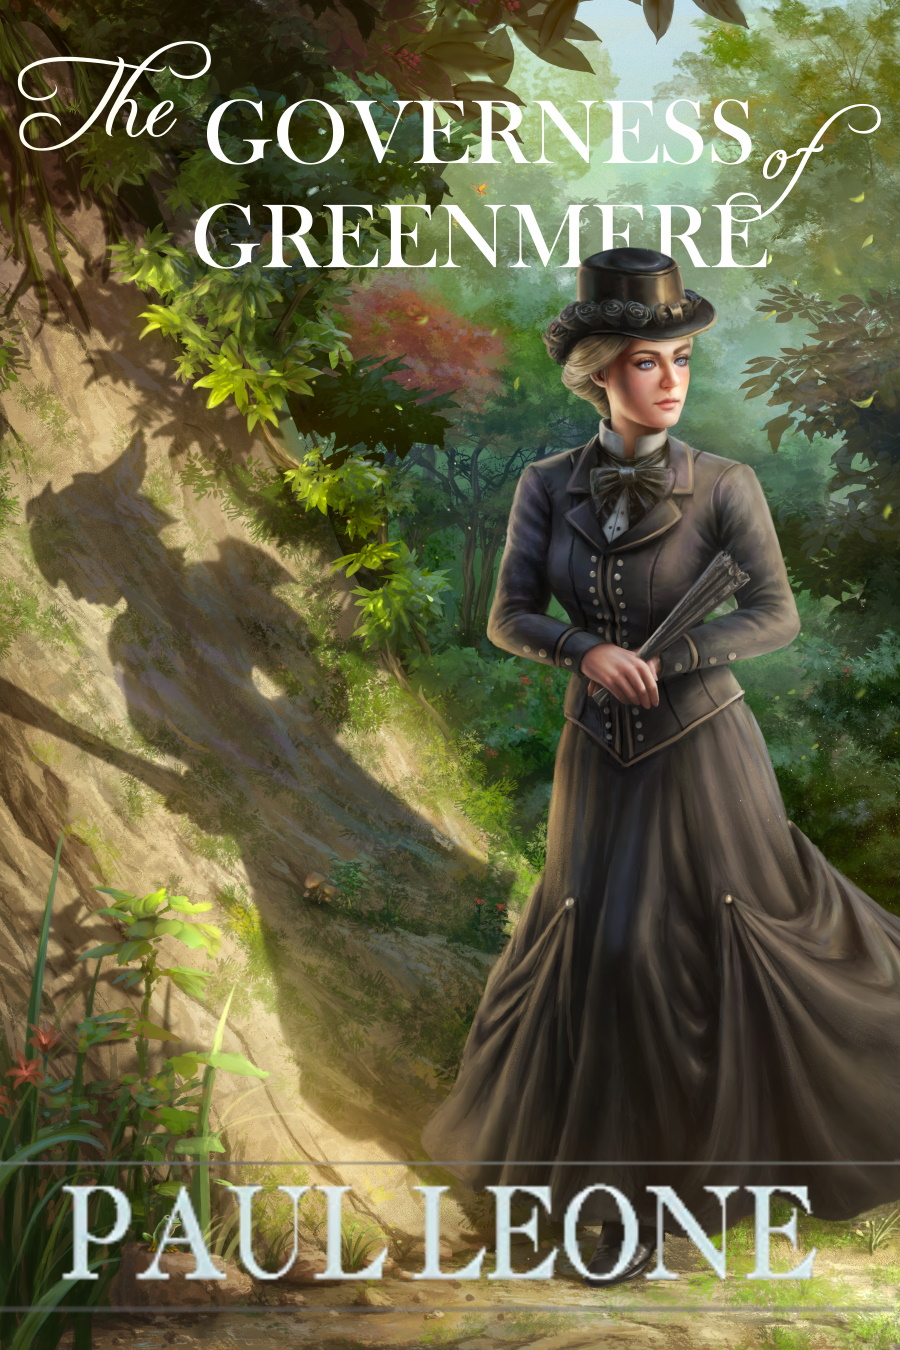 The_Governess_of_Greenmere_Formatting_Small_Version